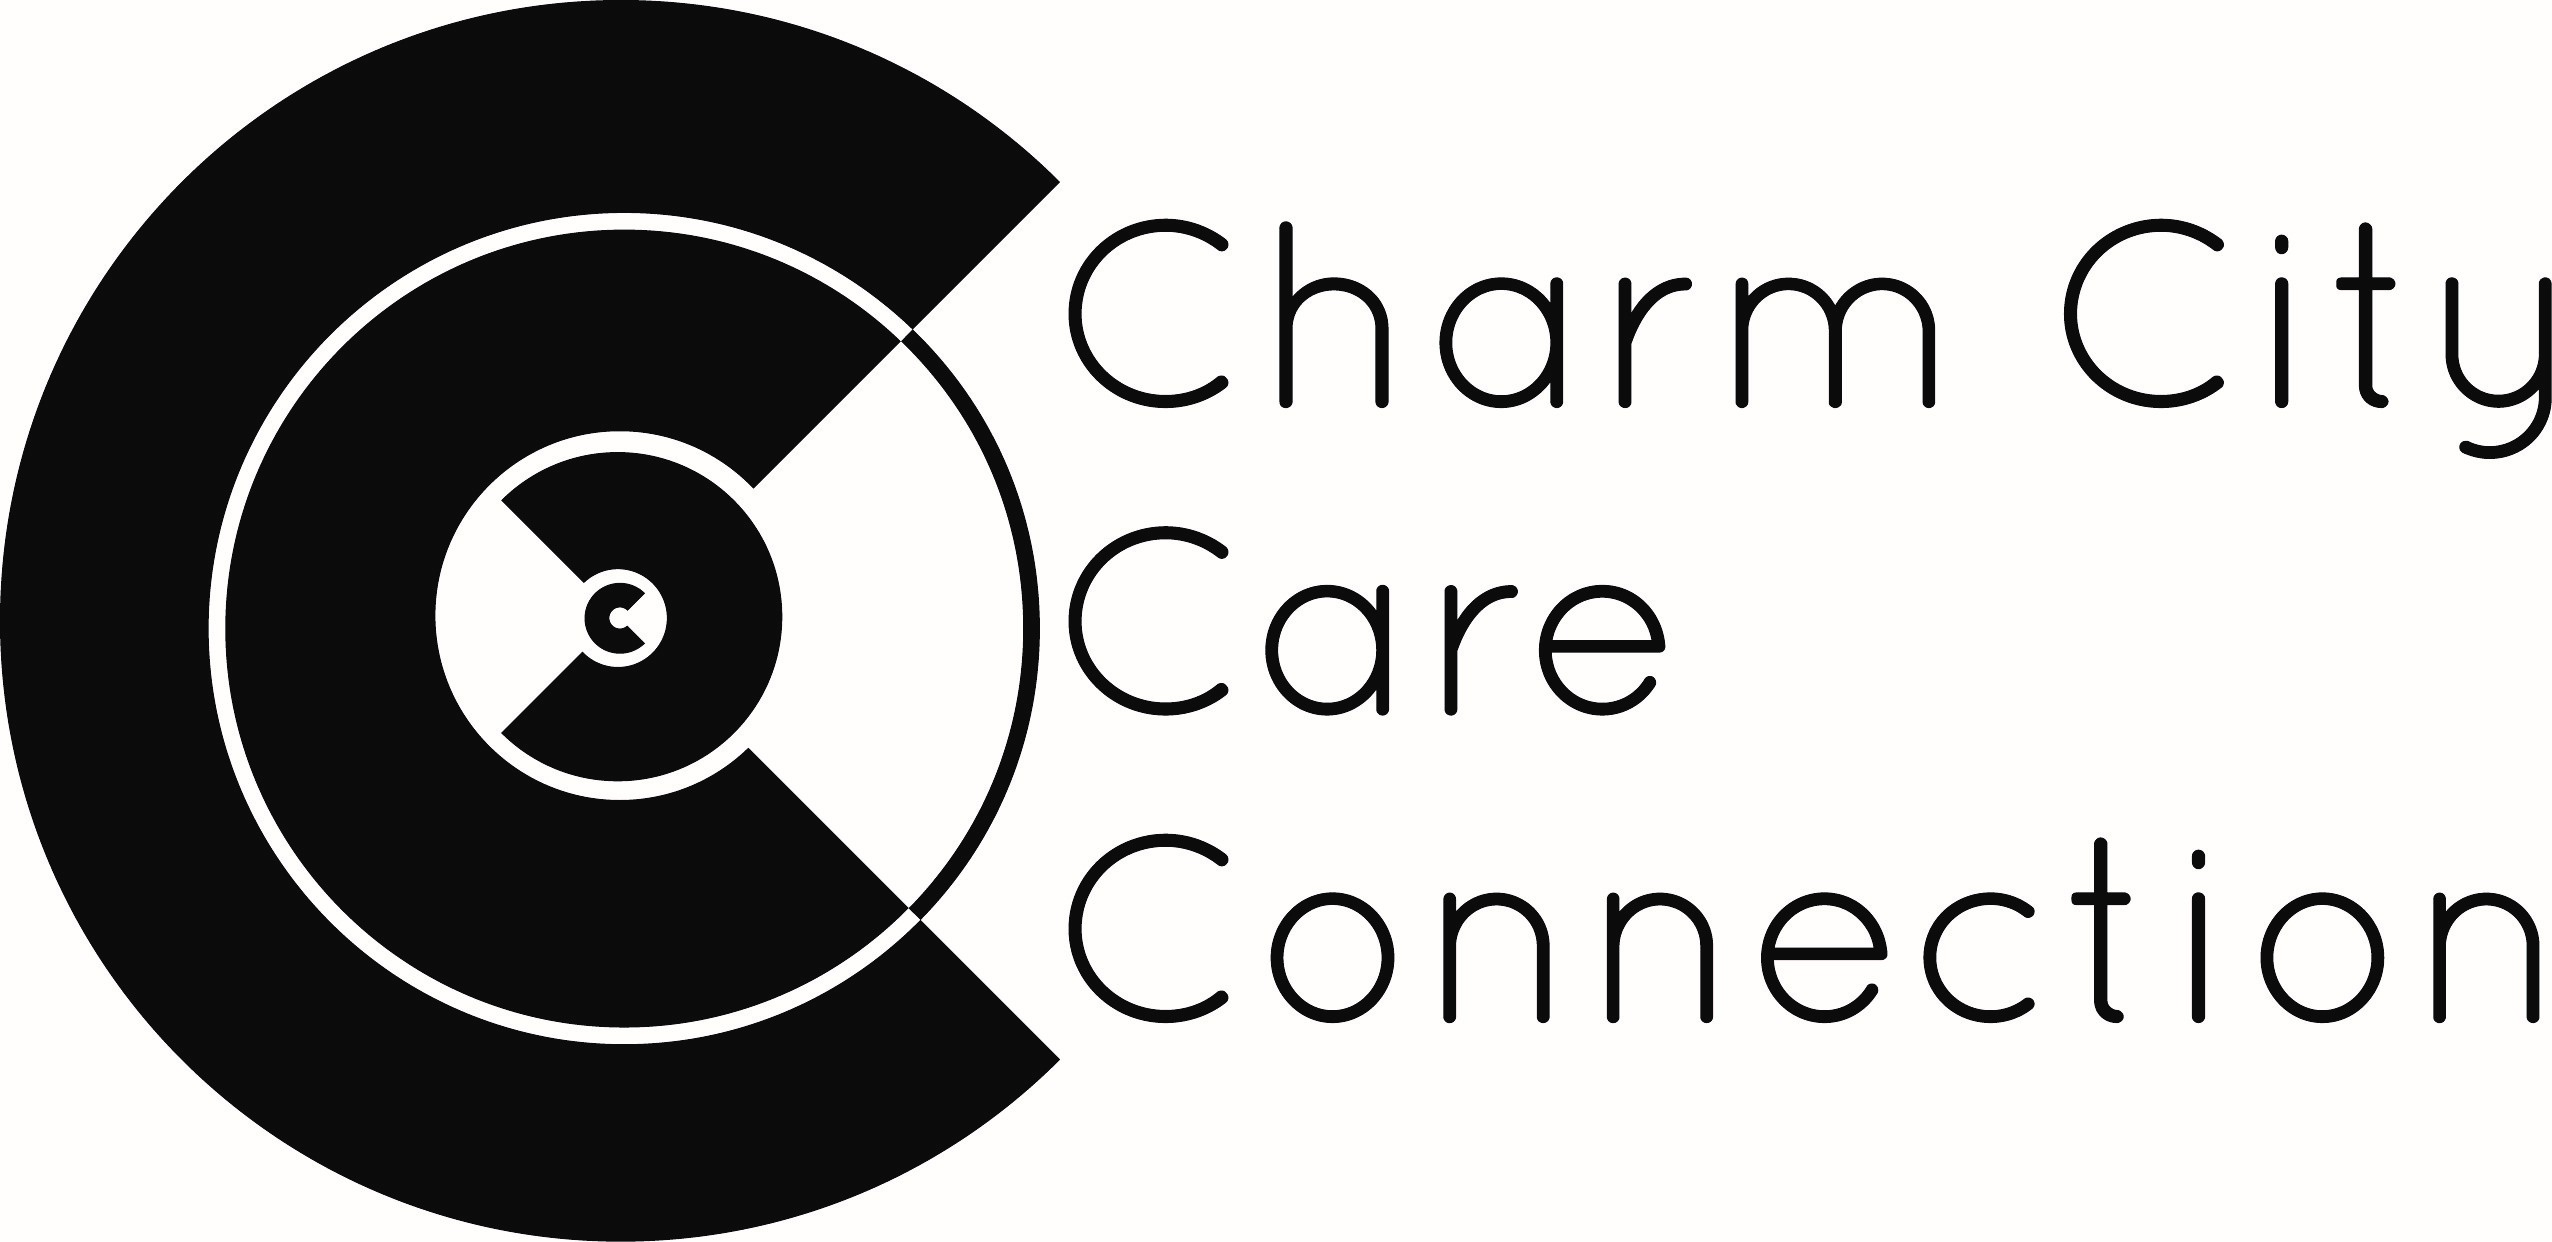 Charm City Care Connection